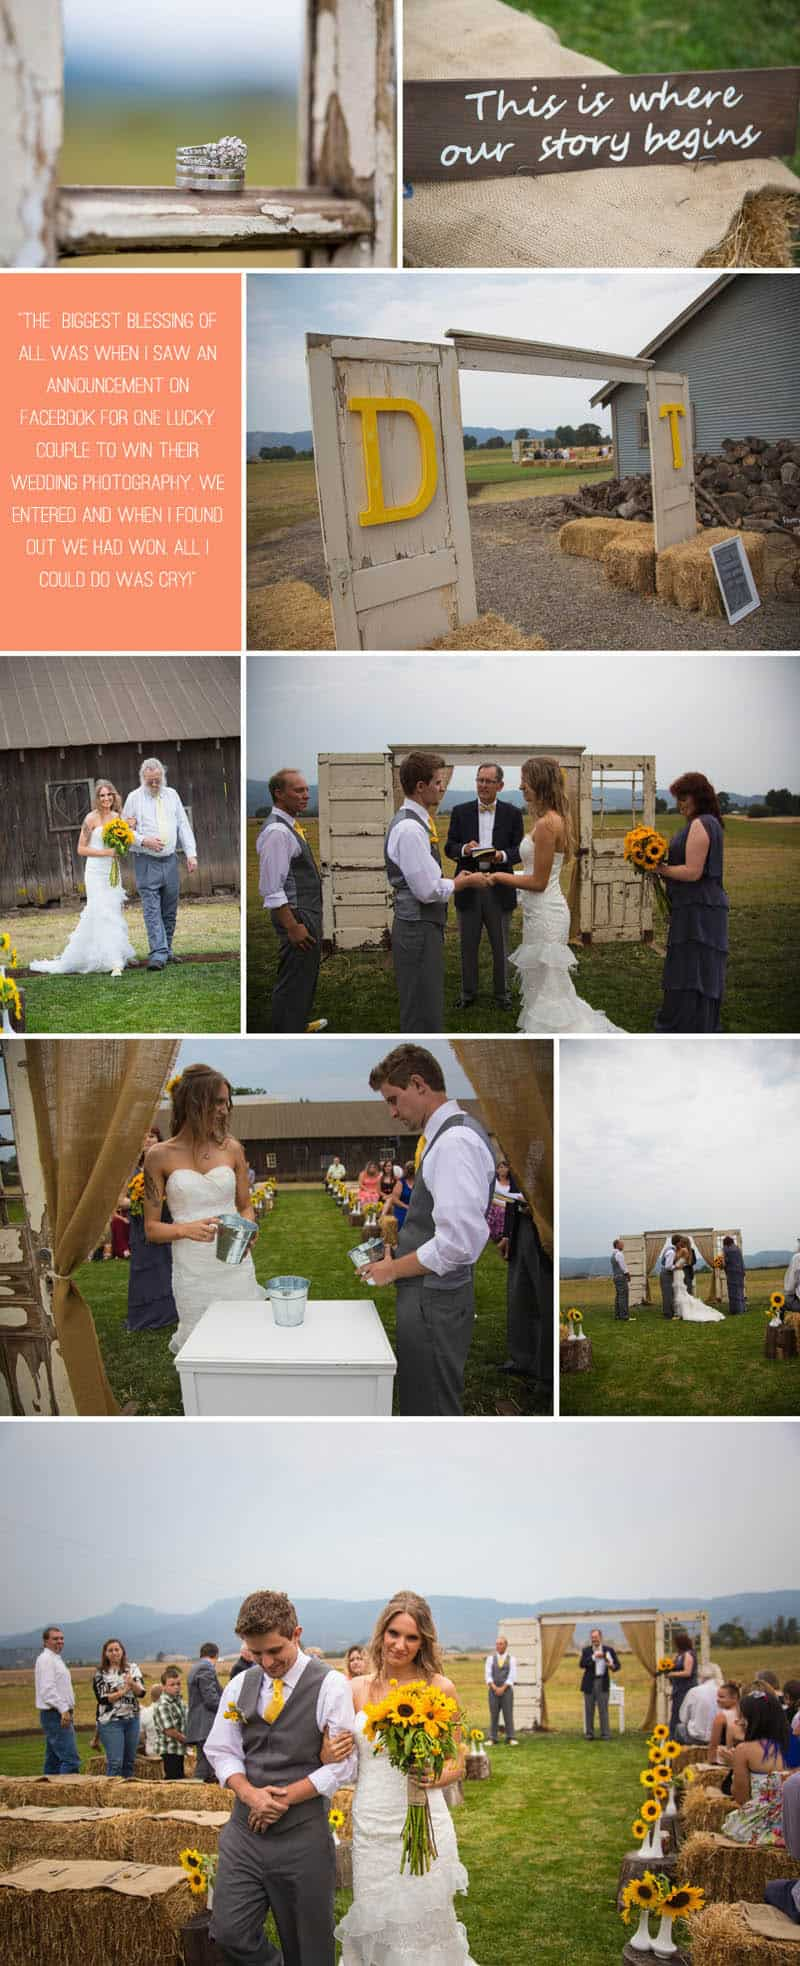 A Rustic Country Wedding for Just £1500 4